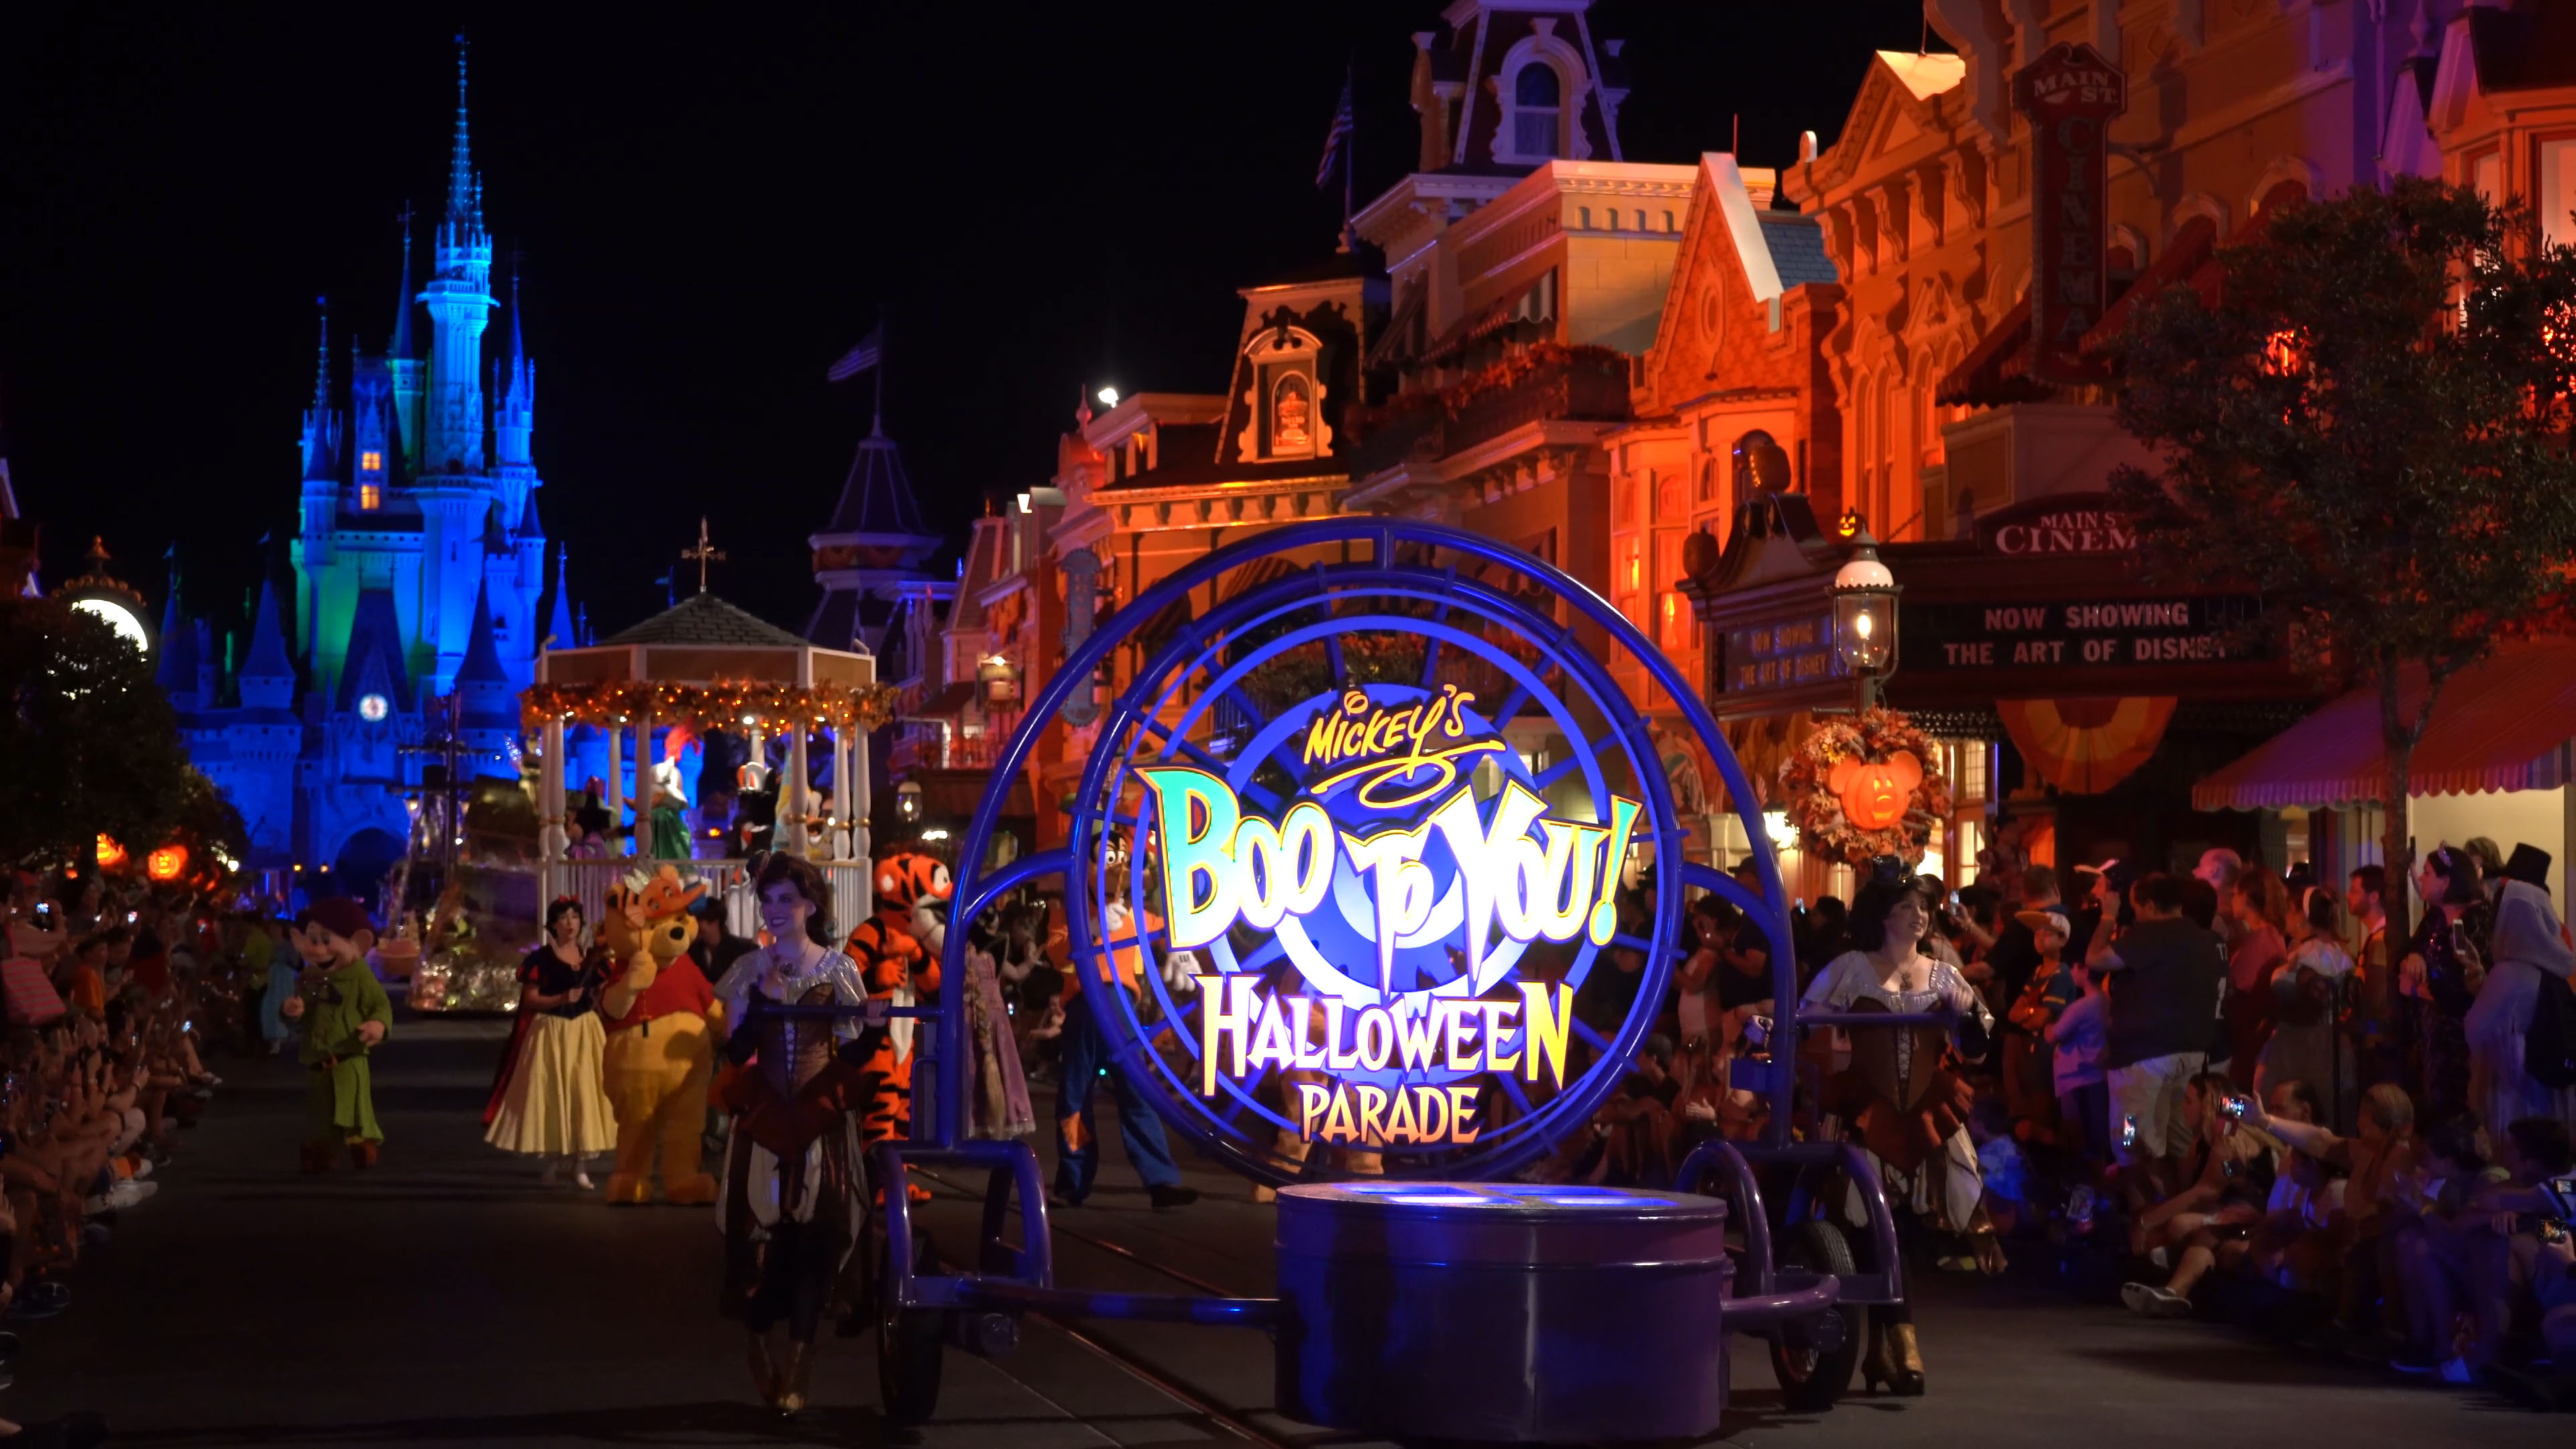 VIDEO: Full 2018 Mickey's Boo-To-You Halloween Parade